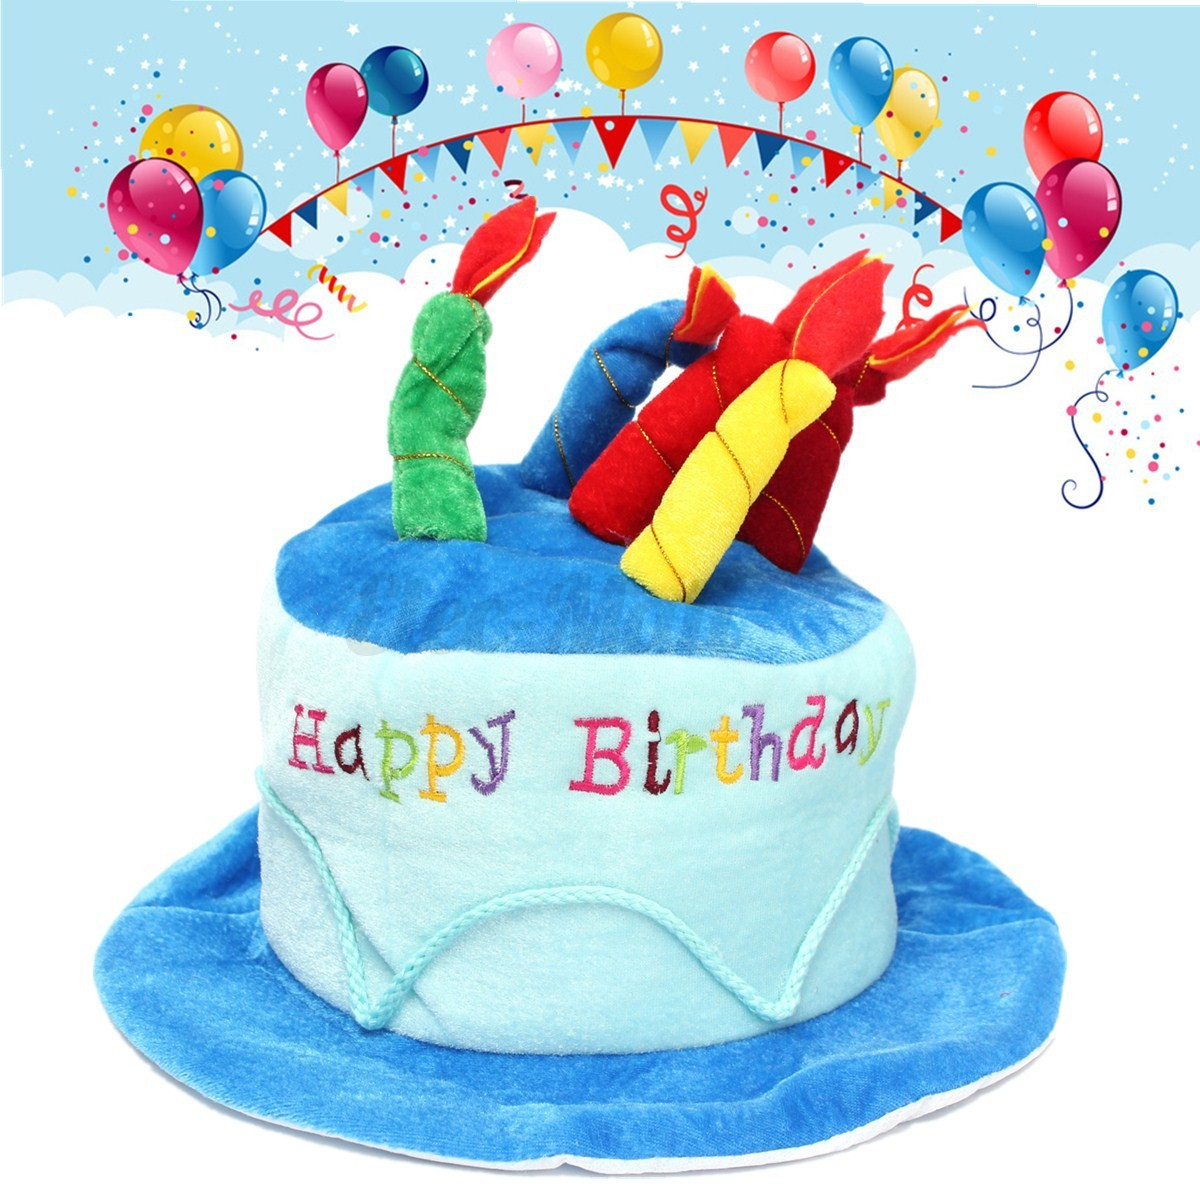 Adult Size Happy Birthday Plush Cake Hats Novelty Cap Jpg 1200x1200 For Adults